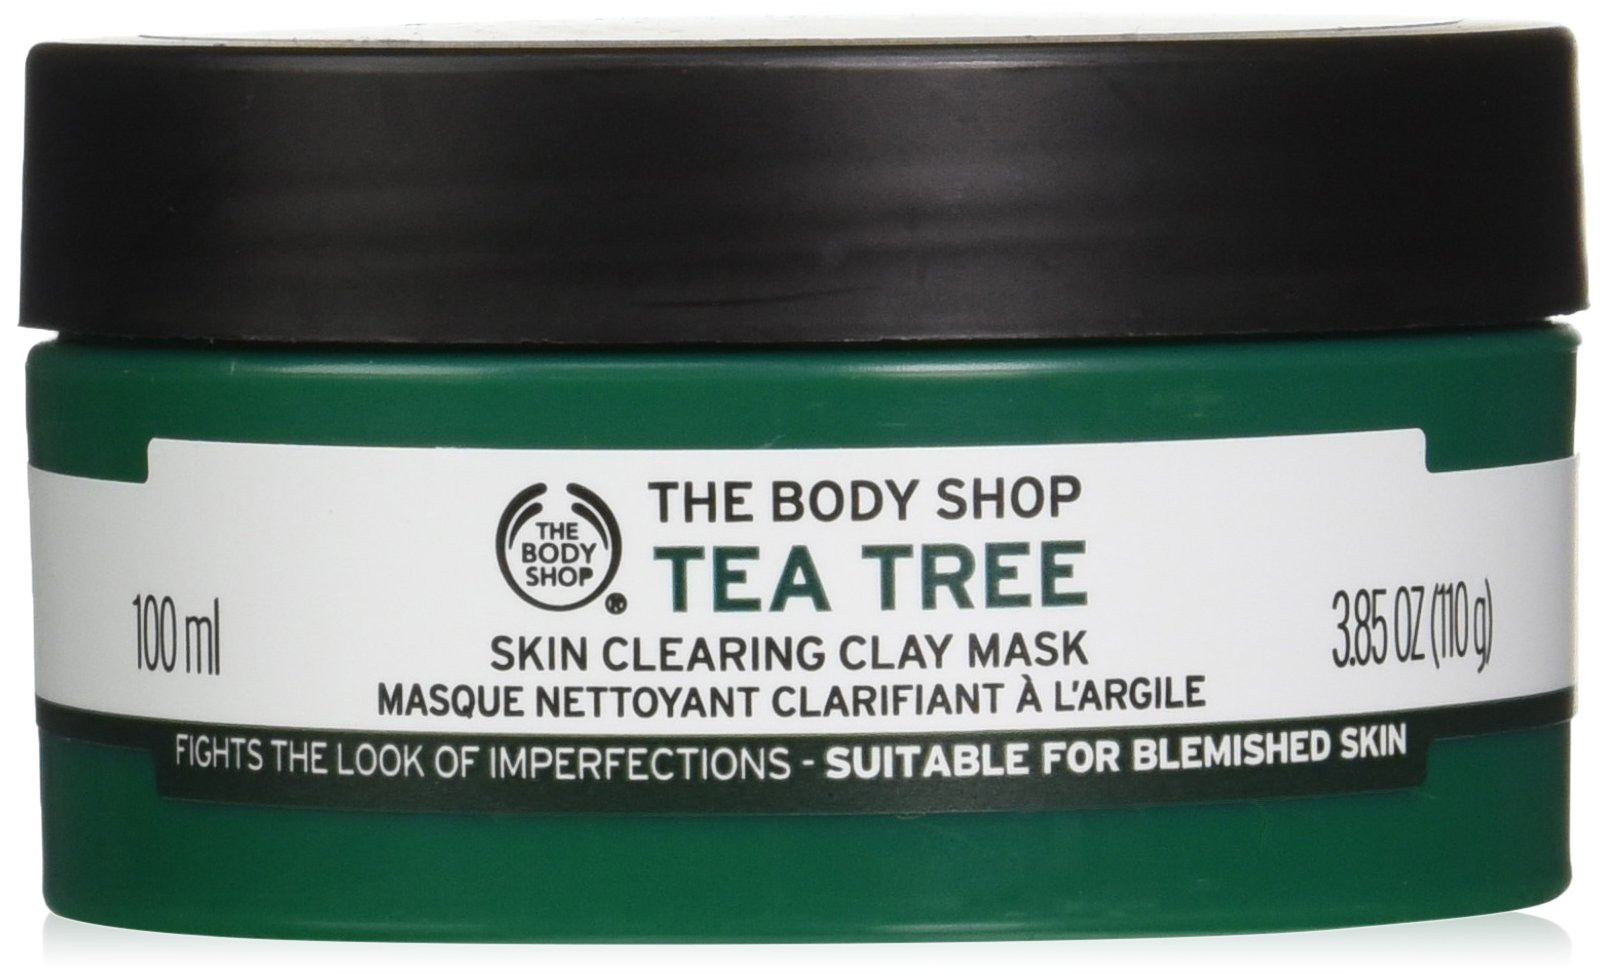 The Body Shop Tea Tree Skin Clearing Clay Face Mask, 3.85 Oz by The Body Shop